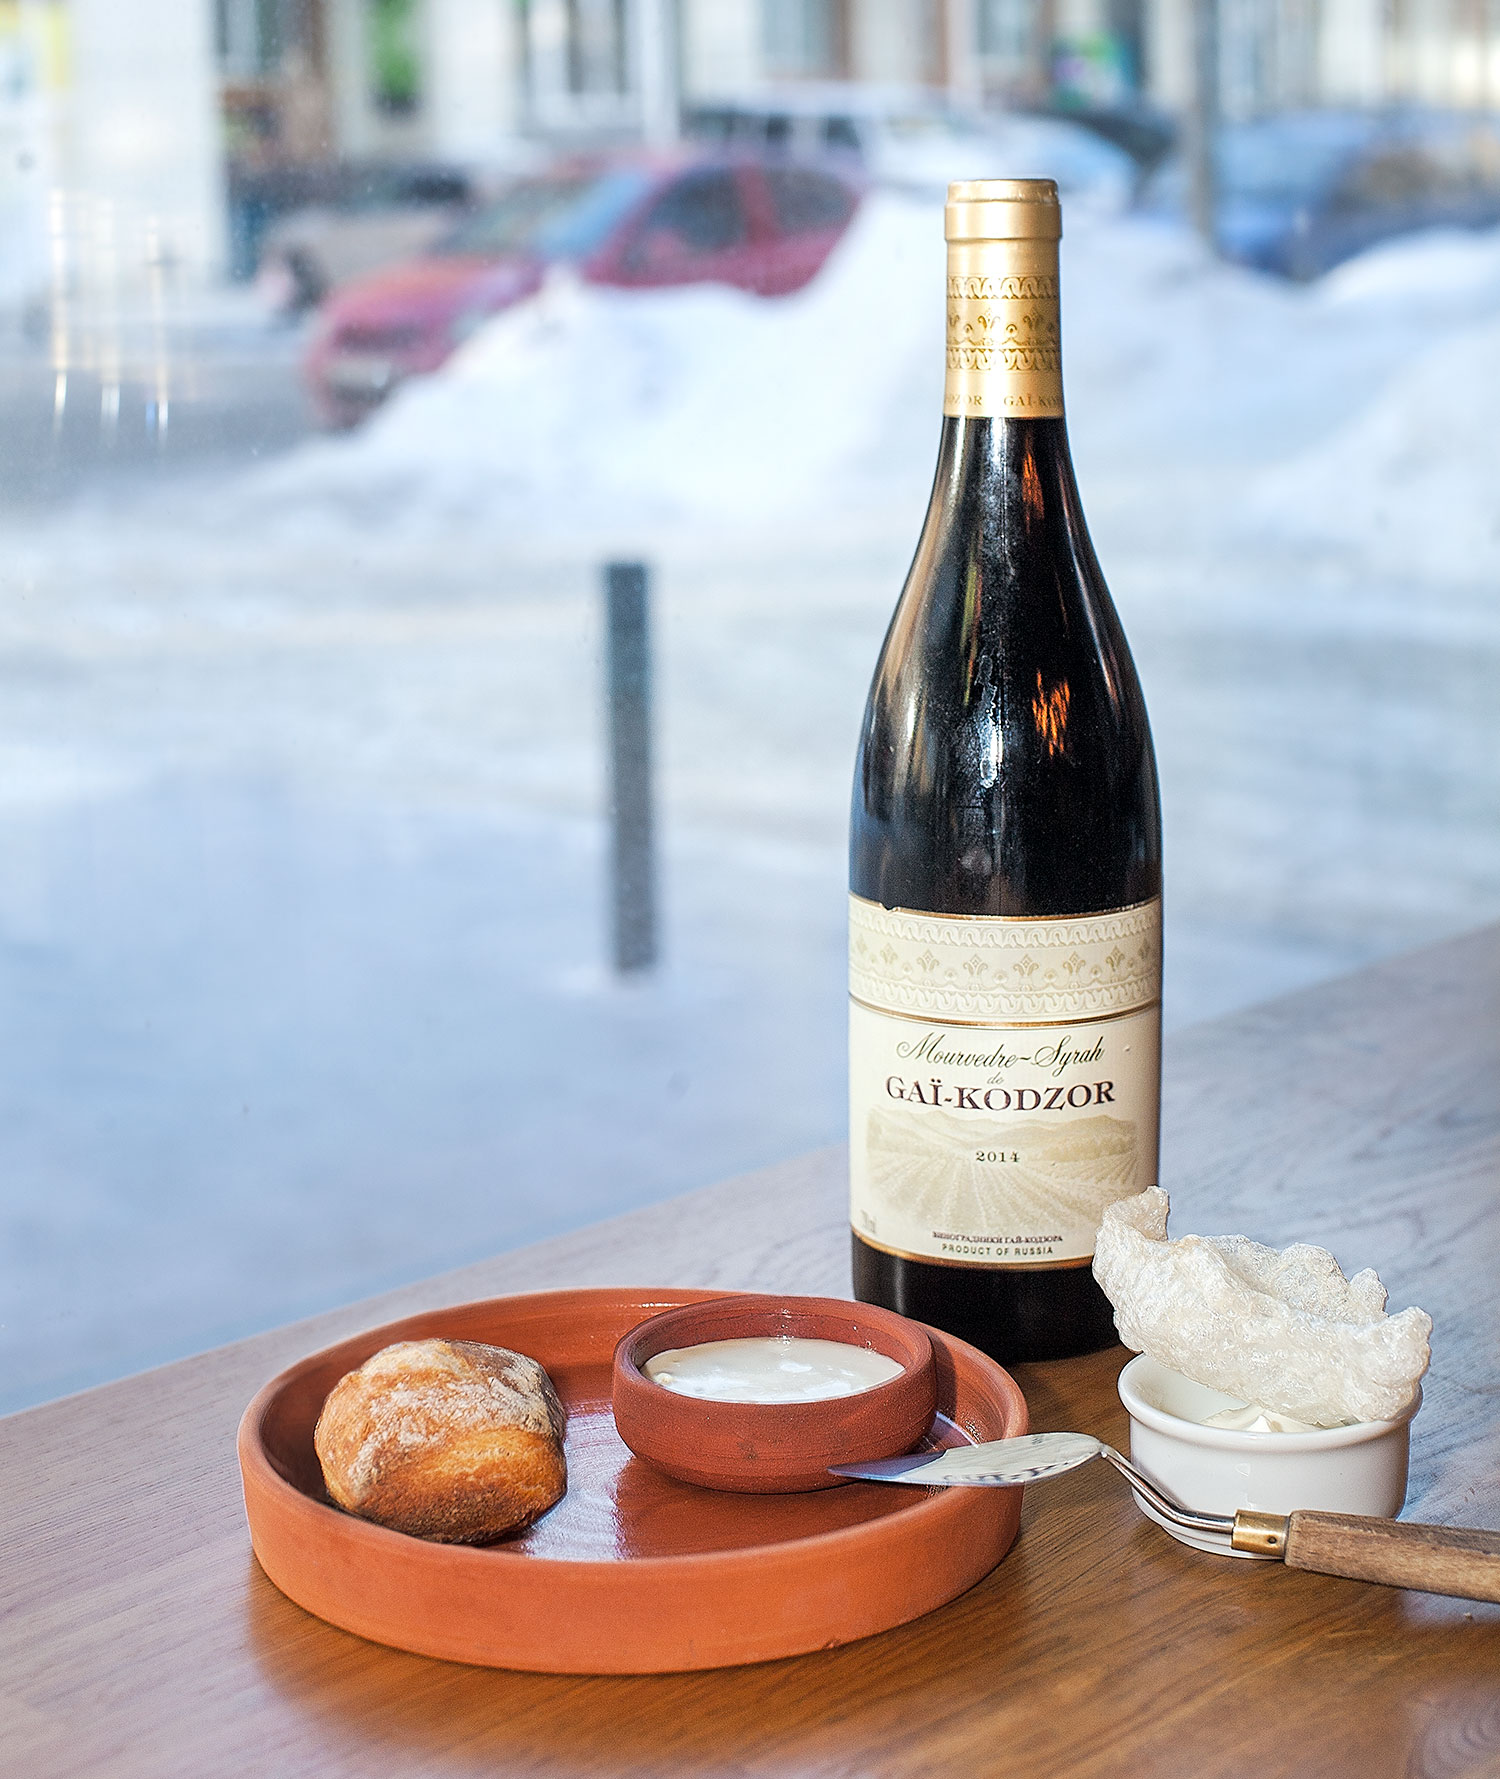 Gaï-Kodzor 2014 Mourvedre-Syrah with cream camembert